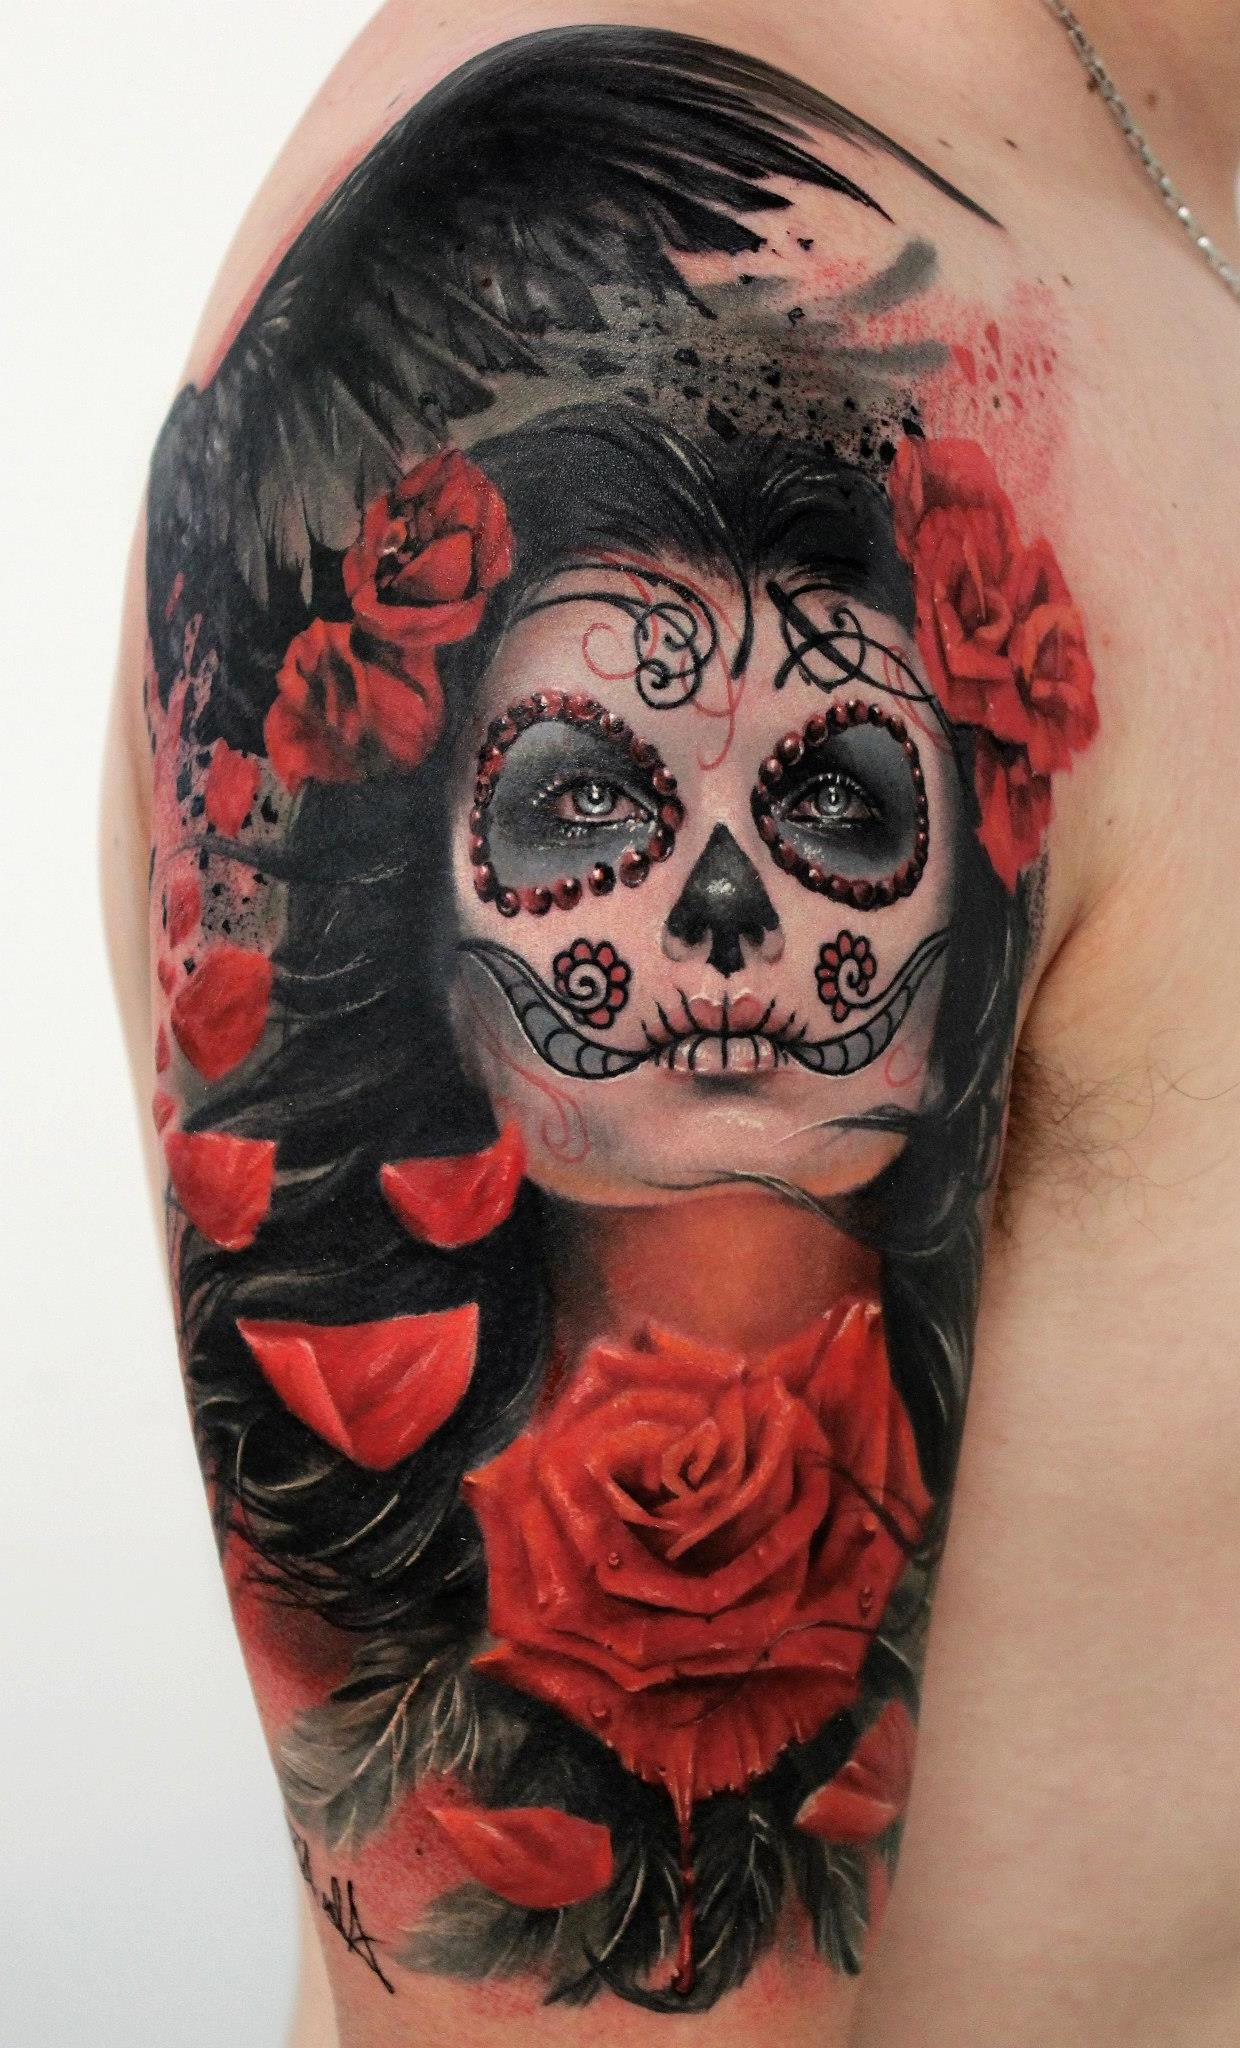 La Catrina in farbenfrohem Tattoo Design